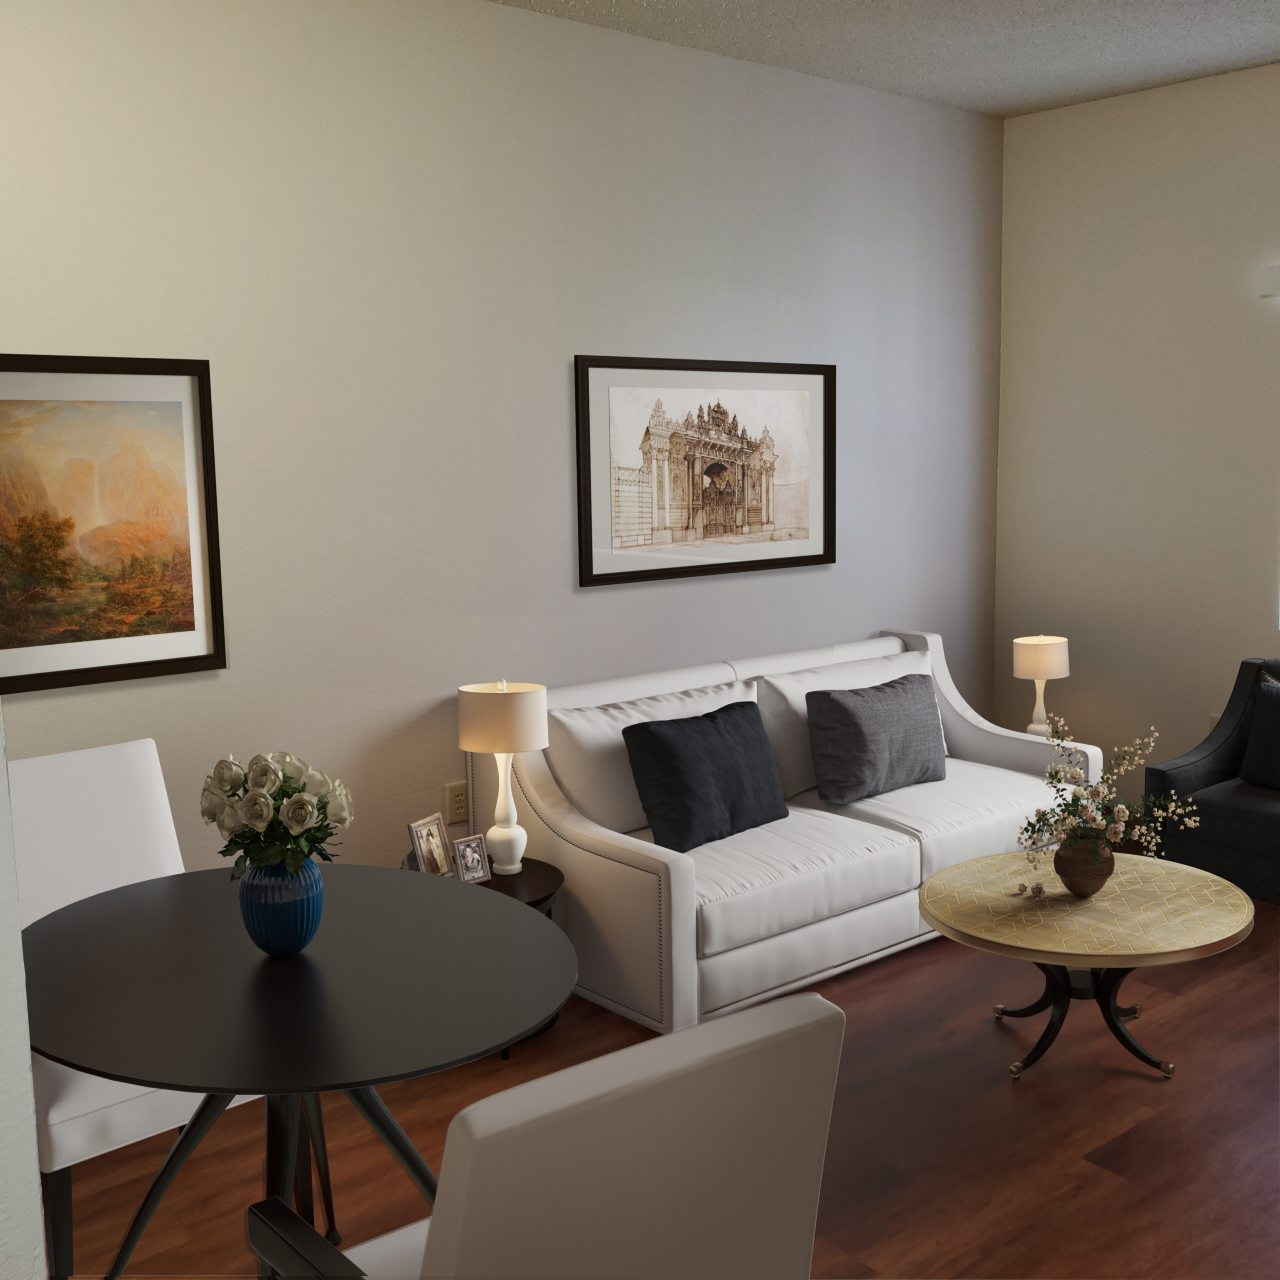 M2 1 BR Living Room 1 133Px